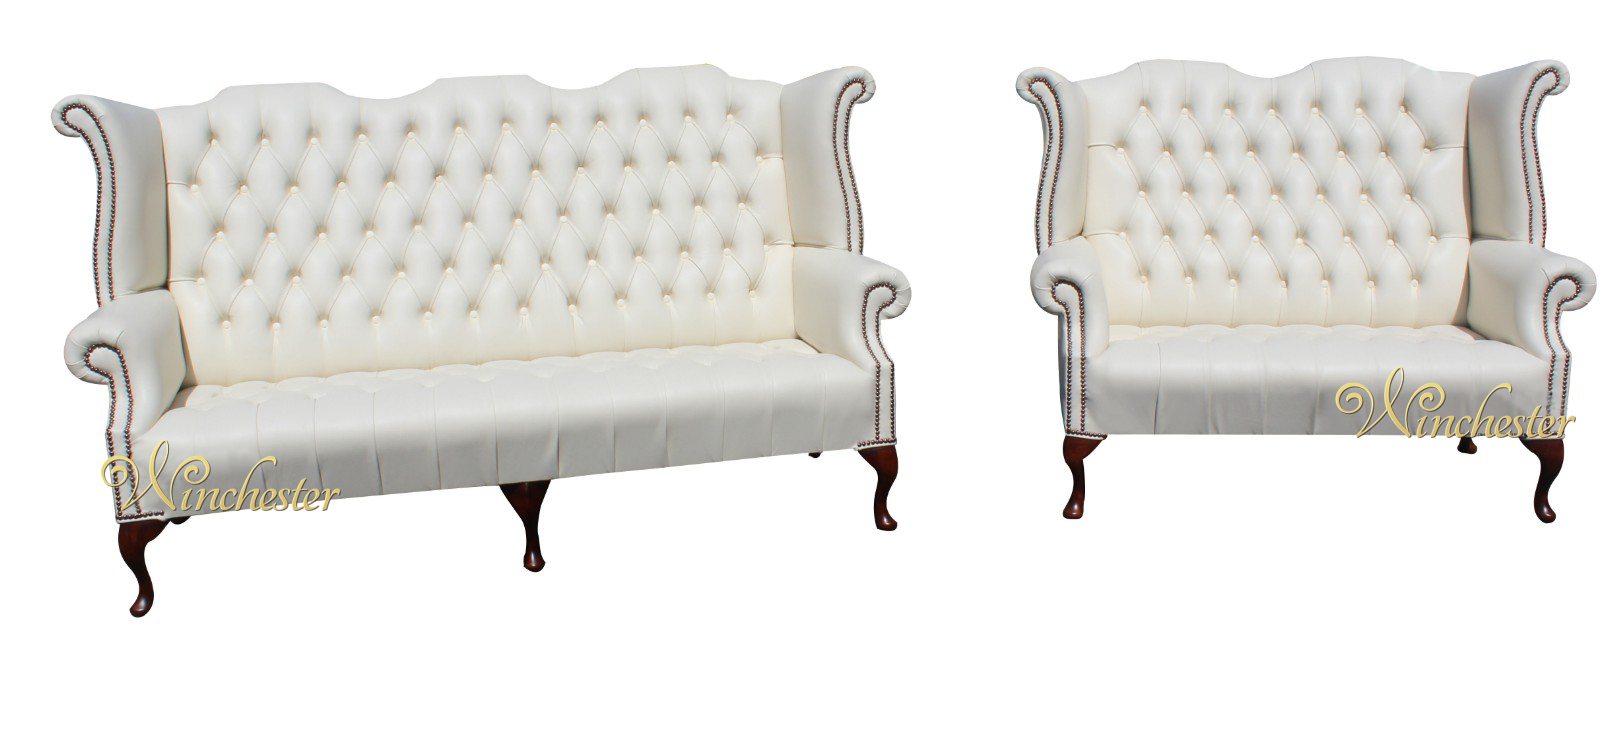 Chesterfield Newby 3 Seater 2 Seater Sofa Suite Cottonseed Cream Leather